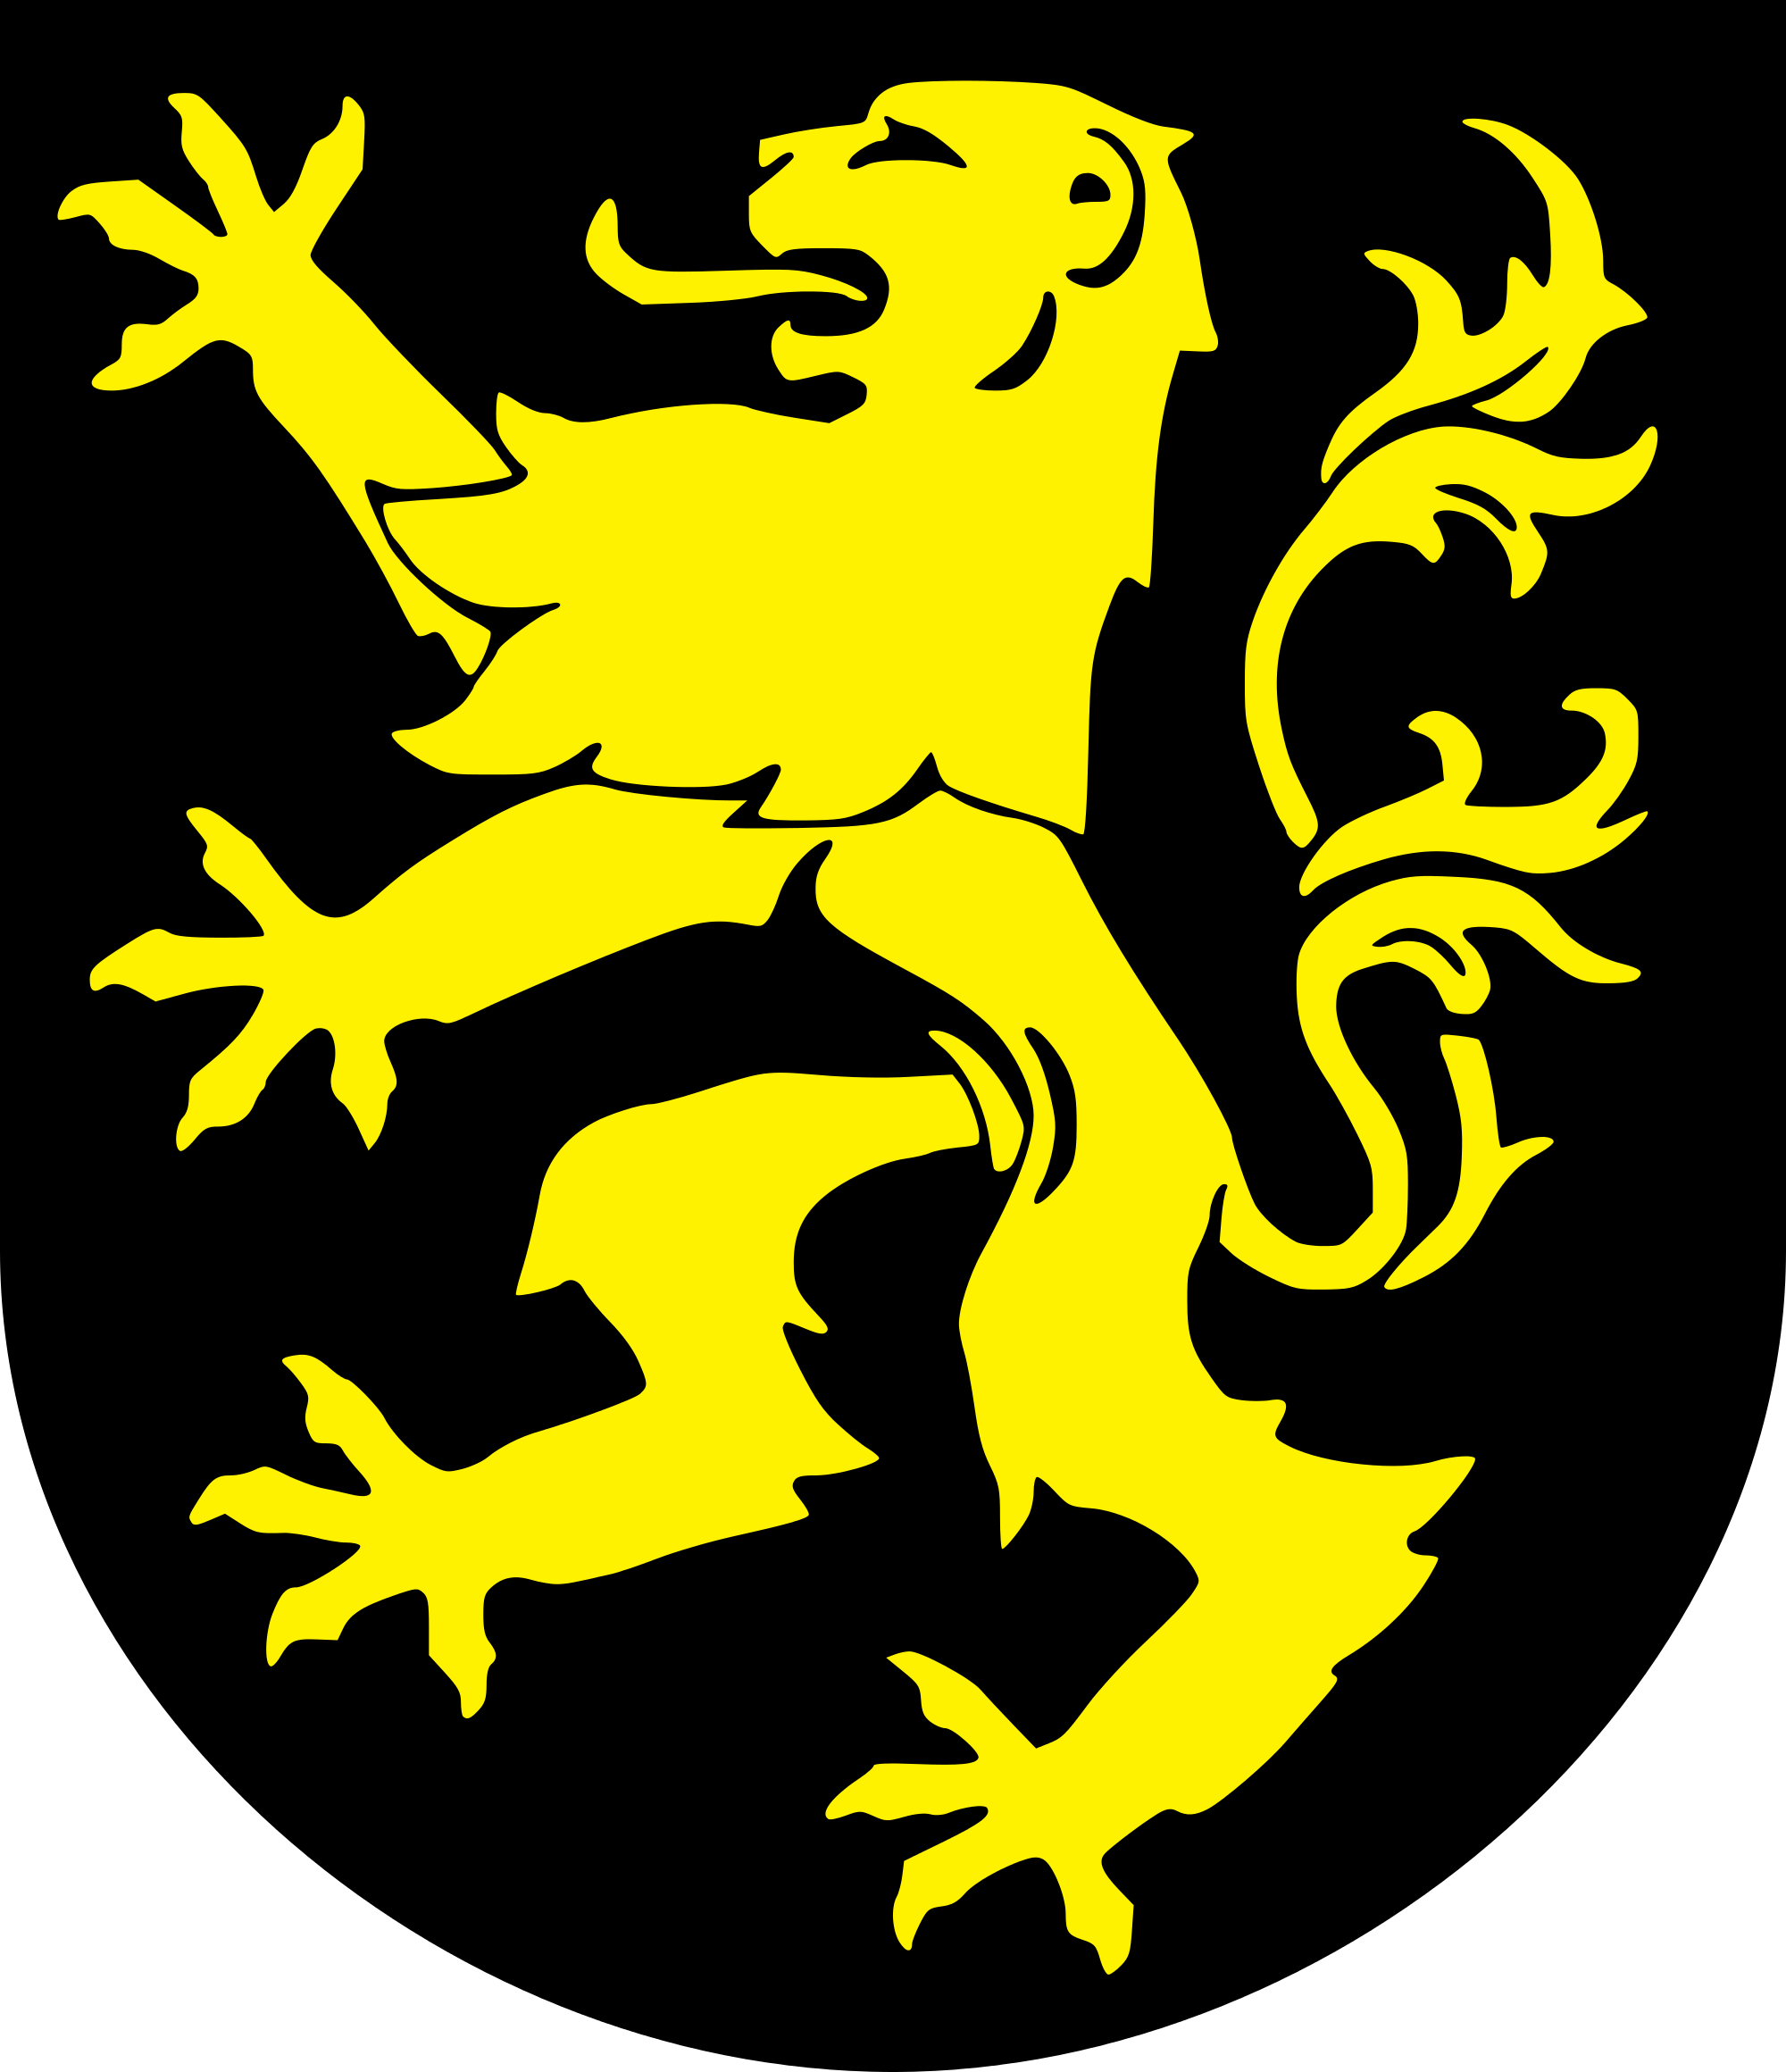 File:Auerbach coat of arms.svg.